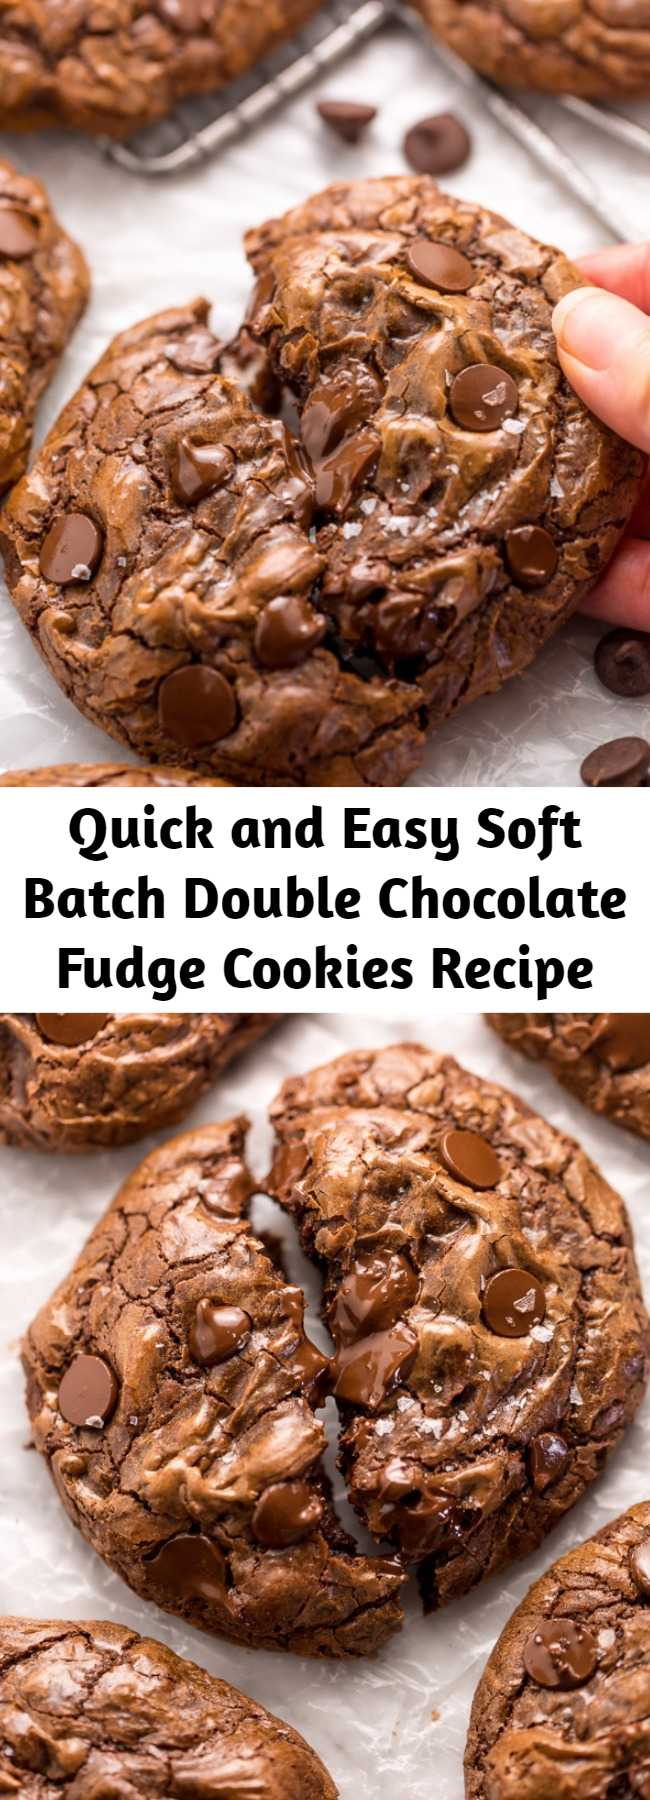 Quick and Easy Soft Batch Double Chocolate Fudge Cookies Recipe - These Soft Batch Double Chocolate Fudge Cookies are for CHOCOLATE LOVERS only!!! Full of intense chocolate fudge flavor, these cookies basically melt in your mouth. So good with a glass of milk!